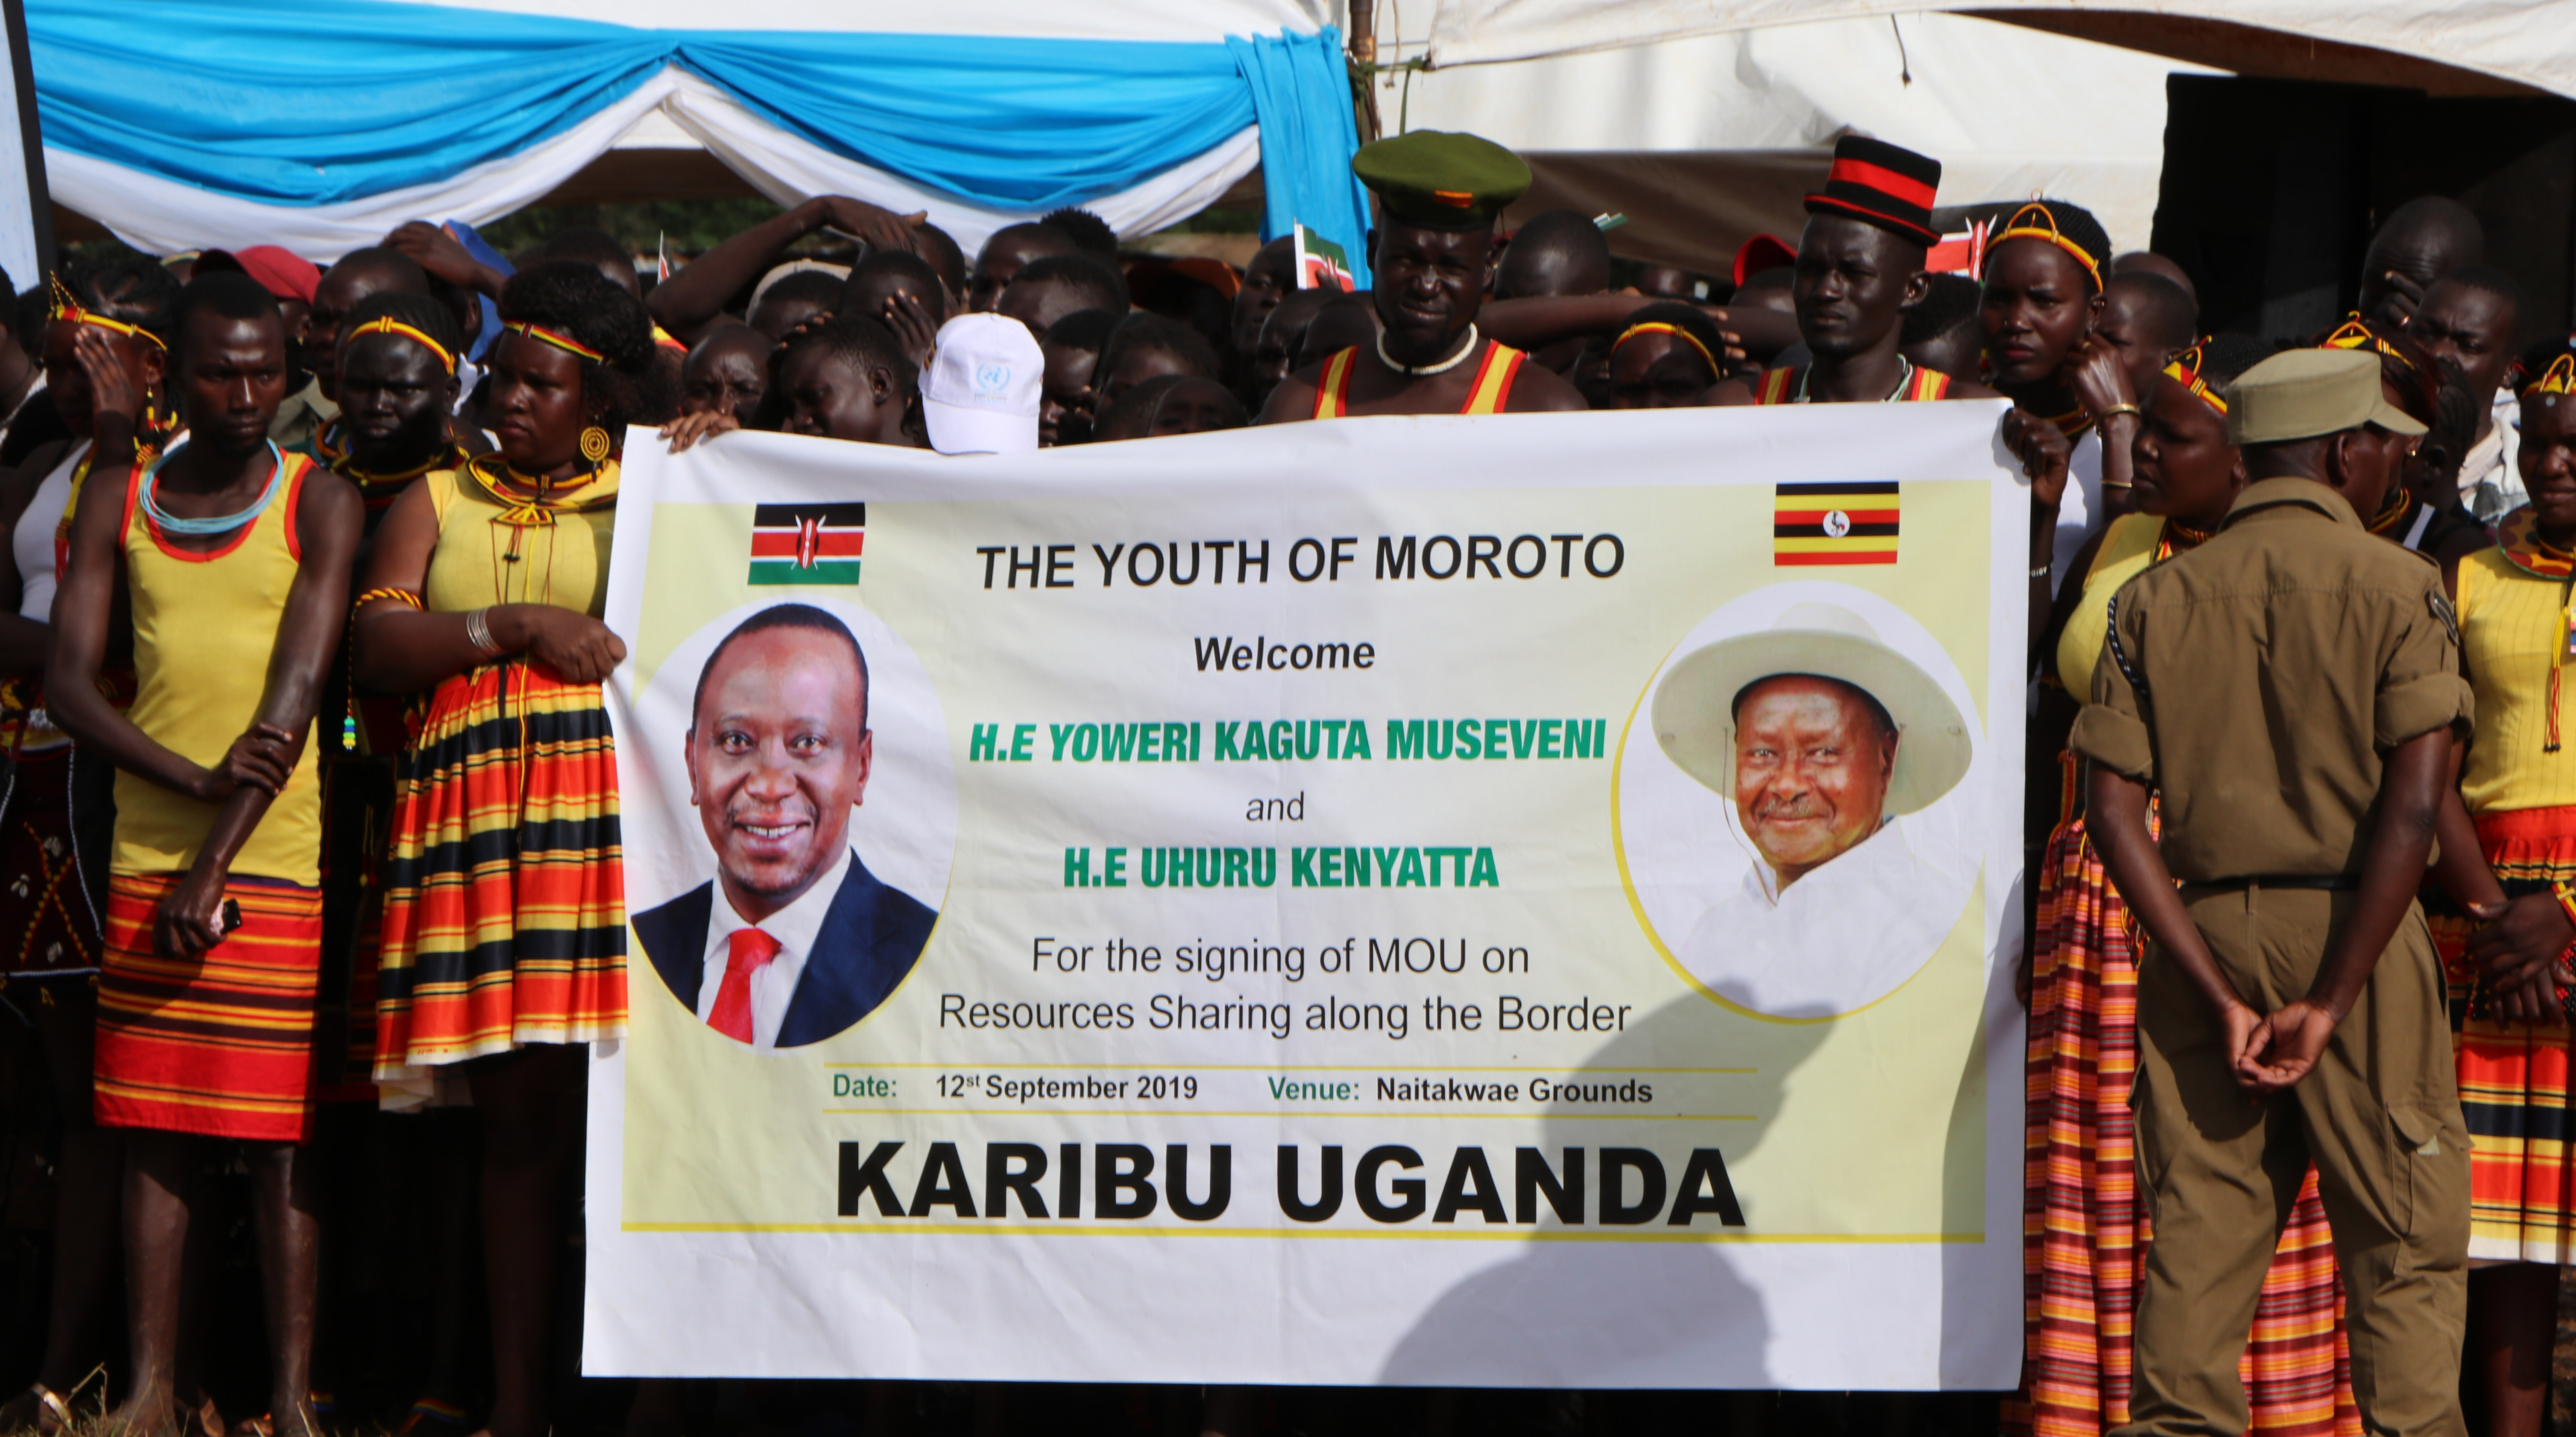 Shows a group of people holding a banner that shows heads of Kenya and Uganda.